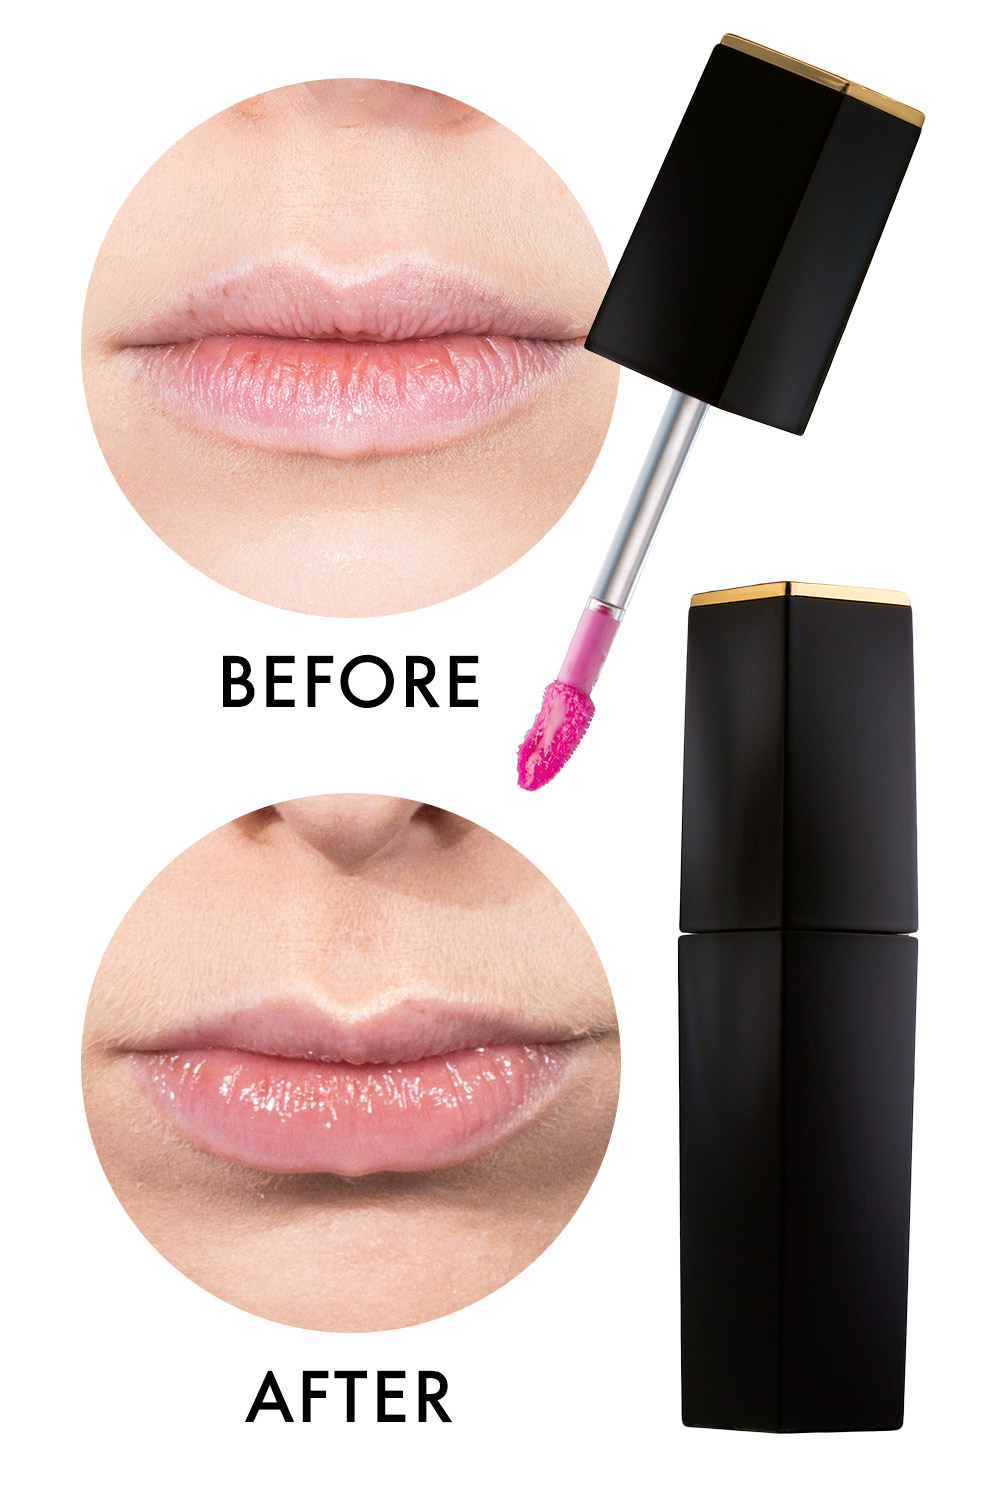 5 Best Lip Plumpers - How to Get Plump Lips in Minutes